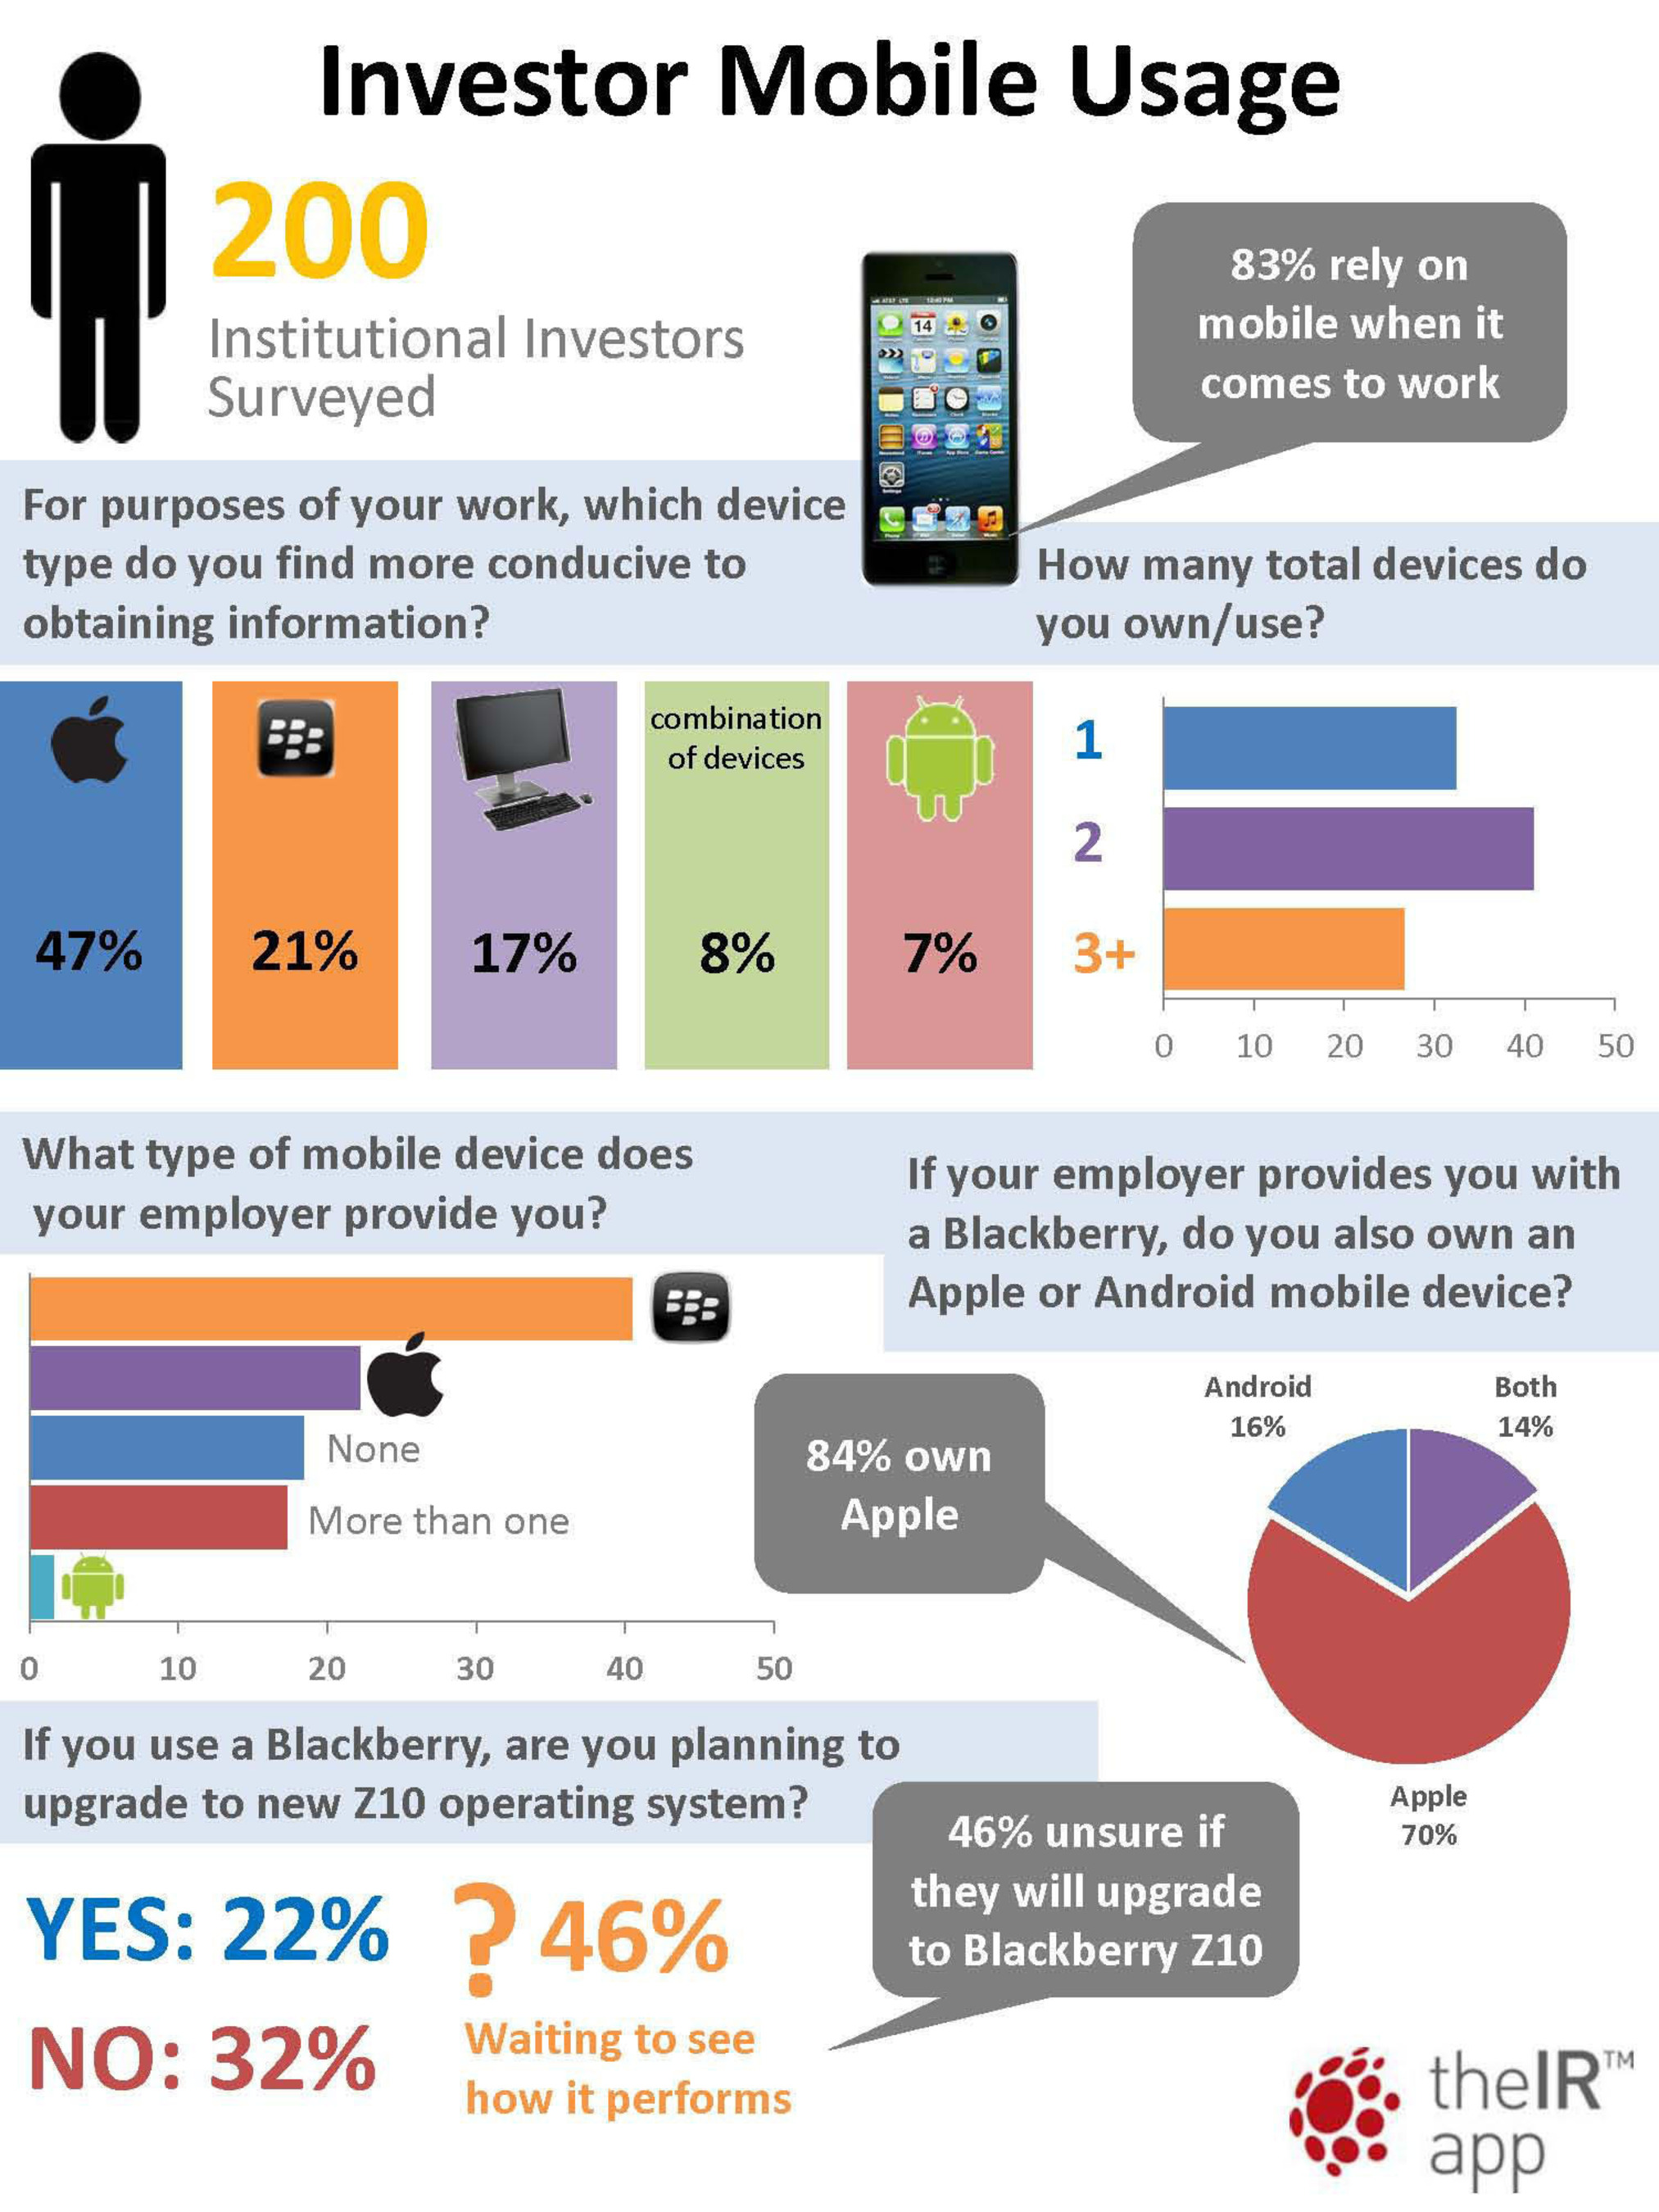 theIRapp™ Survey Shows Institutional Investors More Dependent on Mobile Devices than Desktop